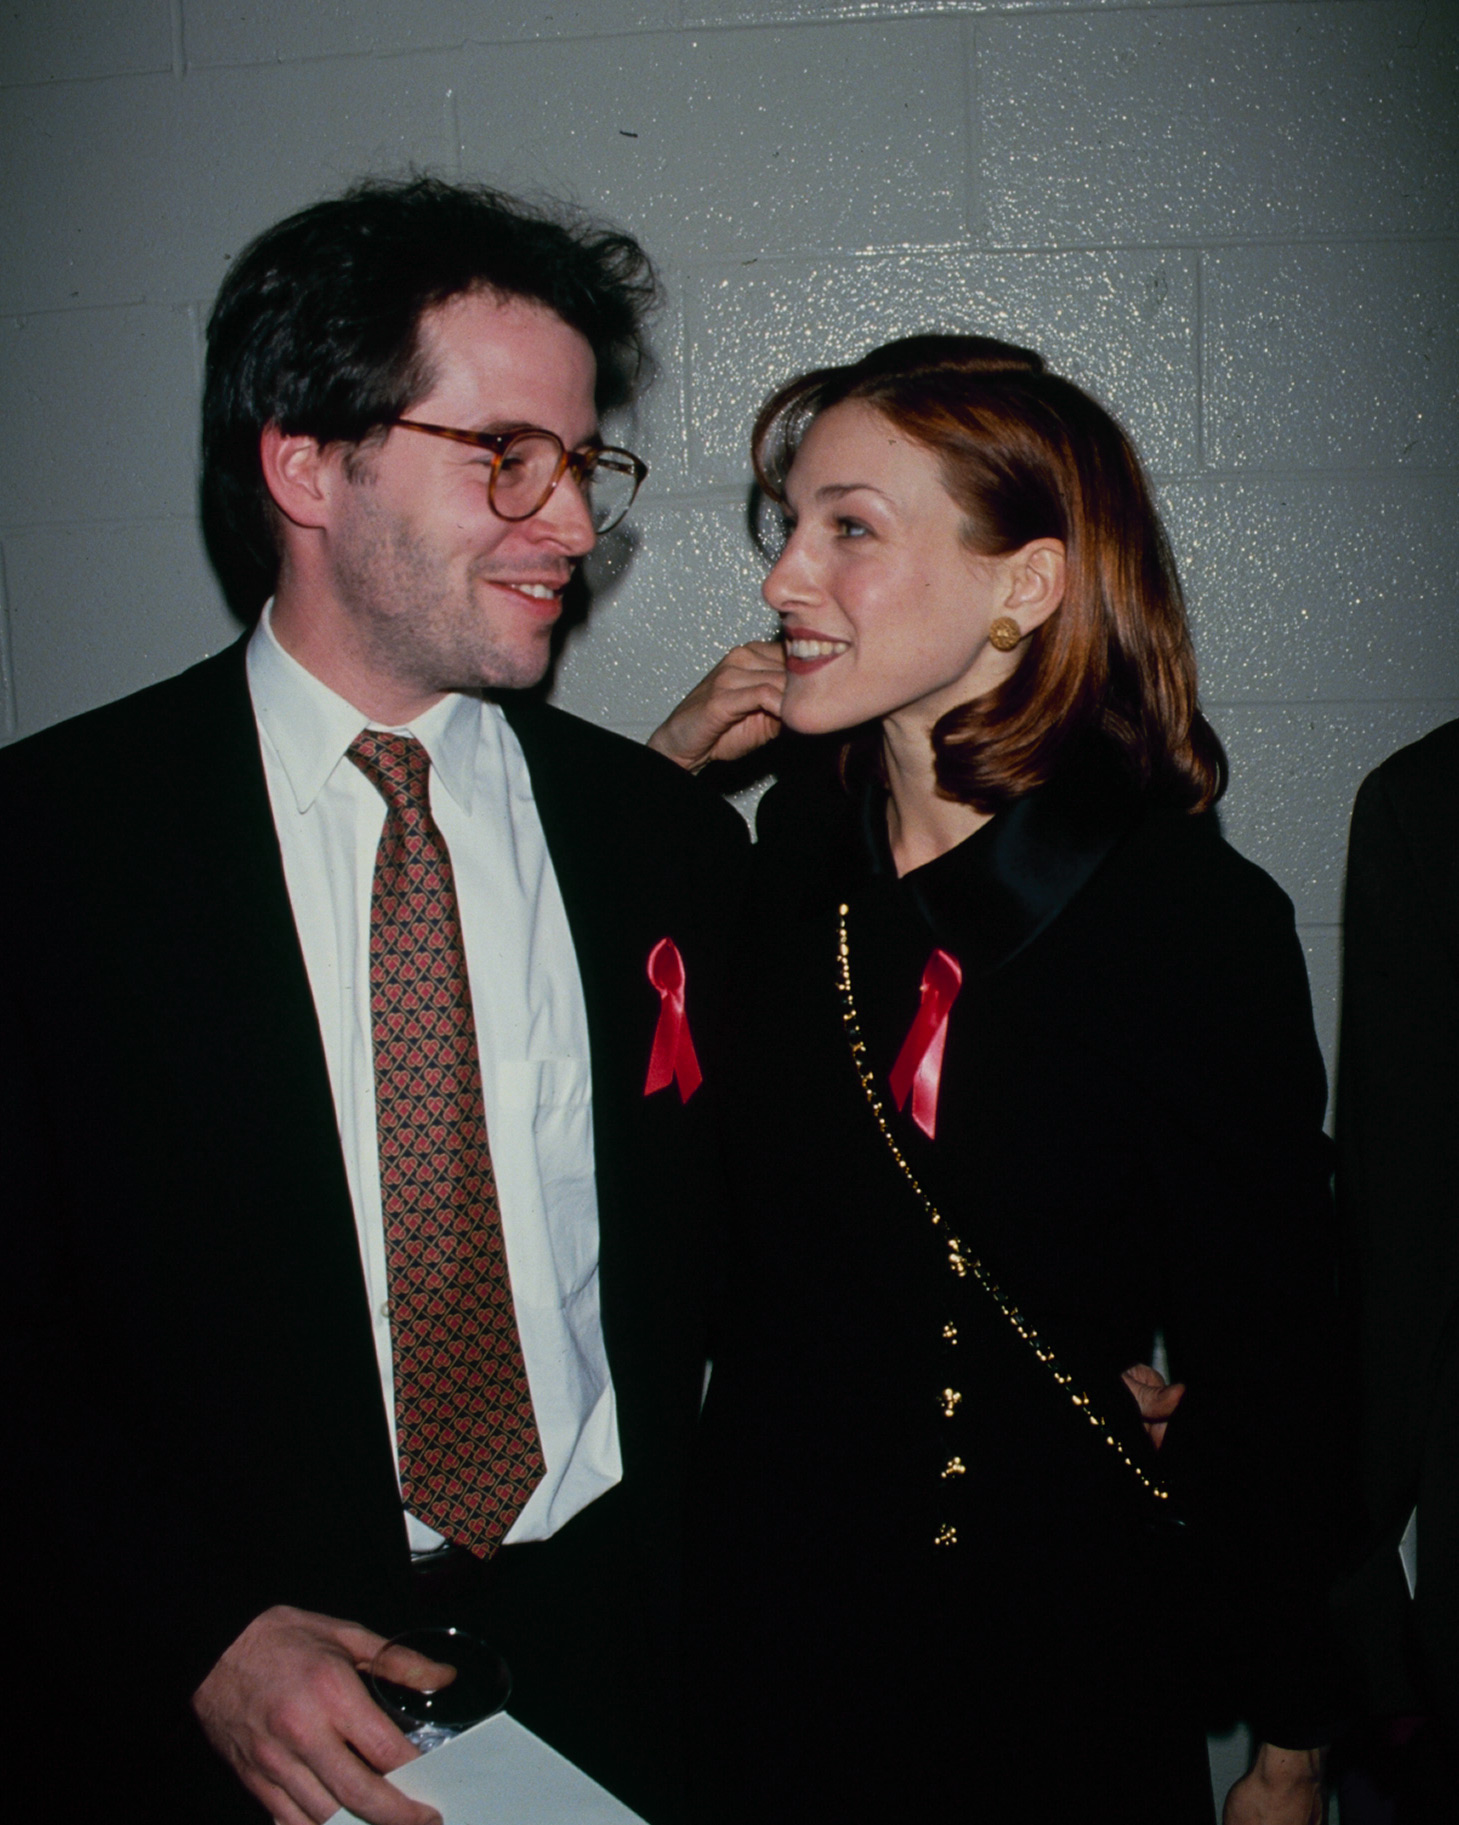 throwbacks-sarah-jessica-parker-matthew-broderick-0616.jpg